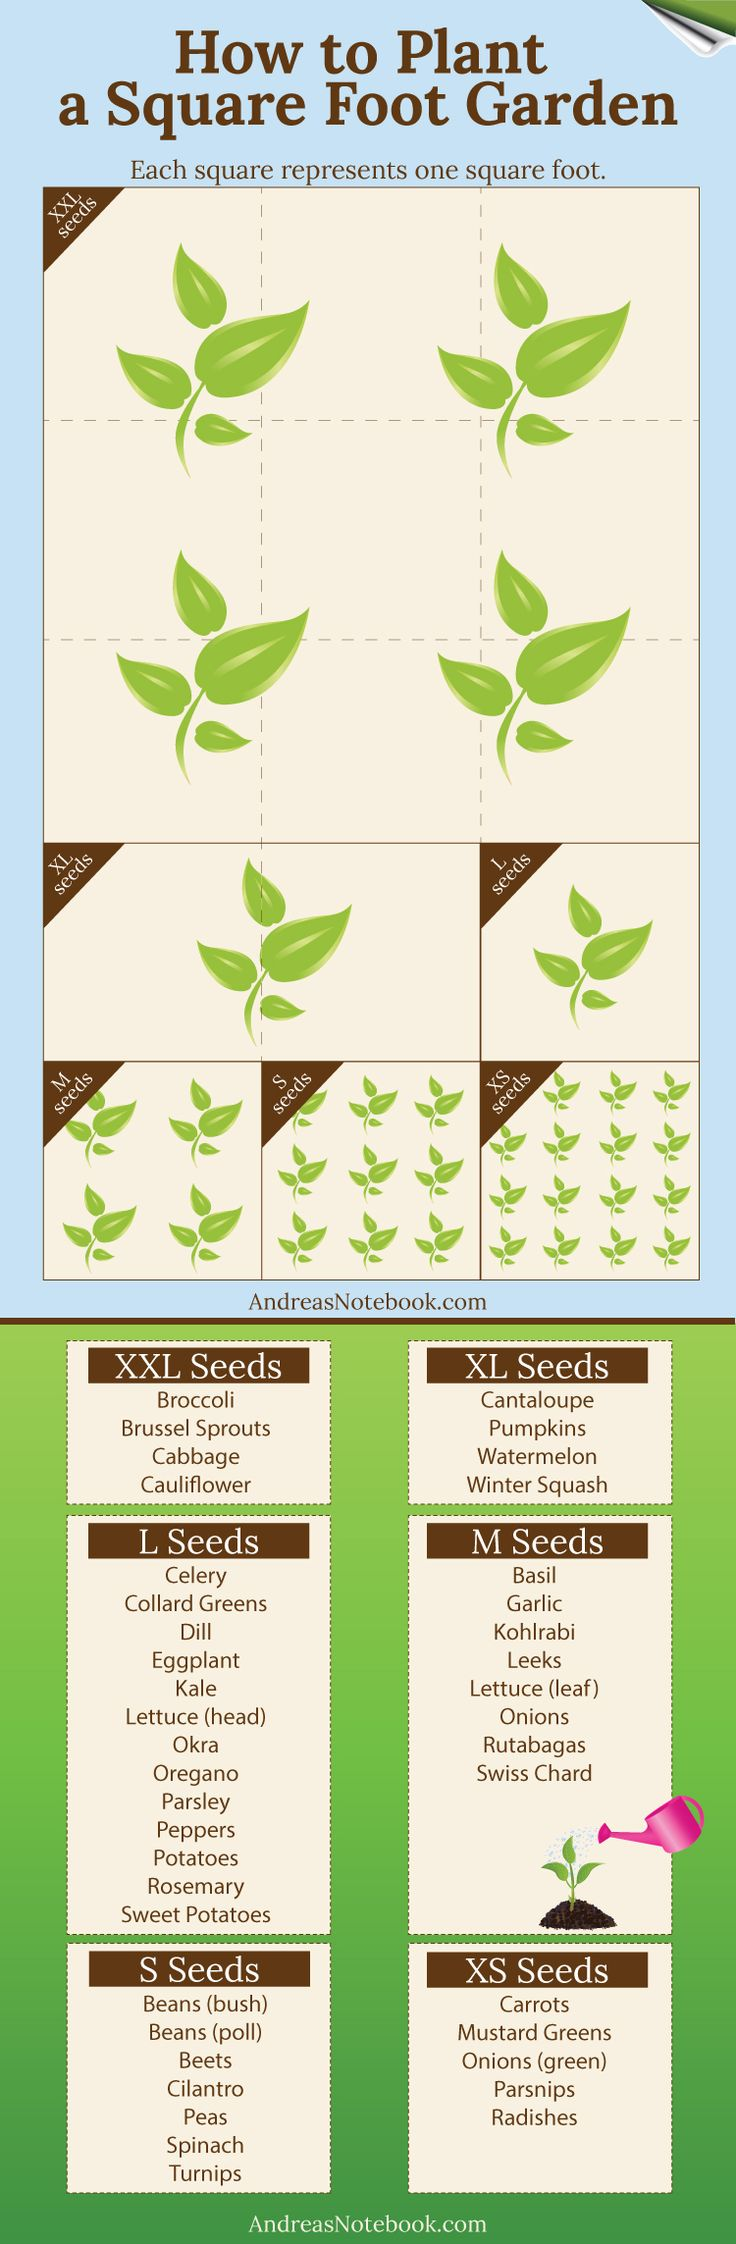 Square foot garden map free printable for garden journal - Infographic How To Plant A Square Foot Garden